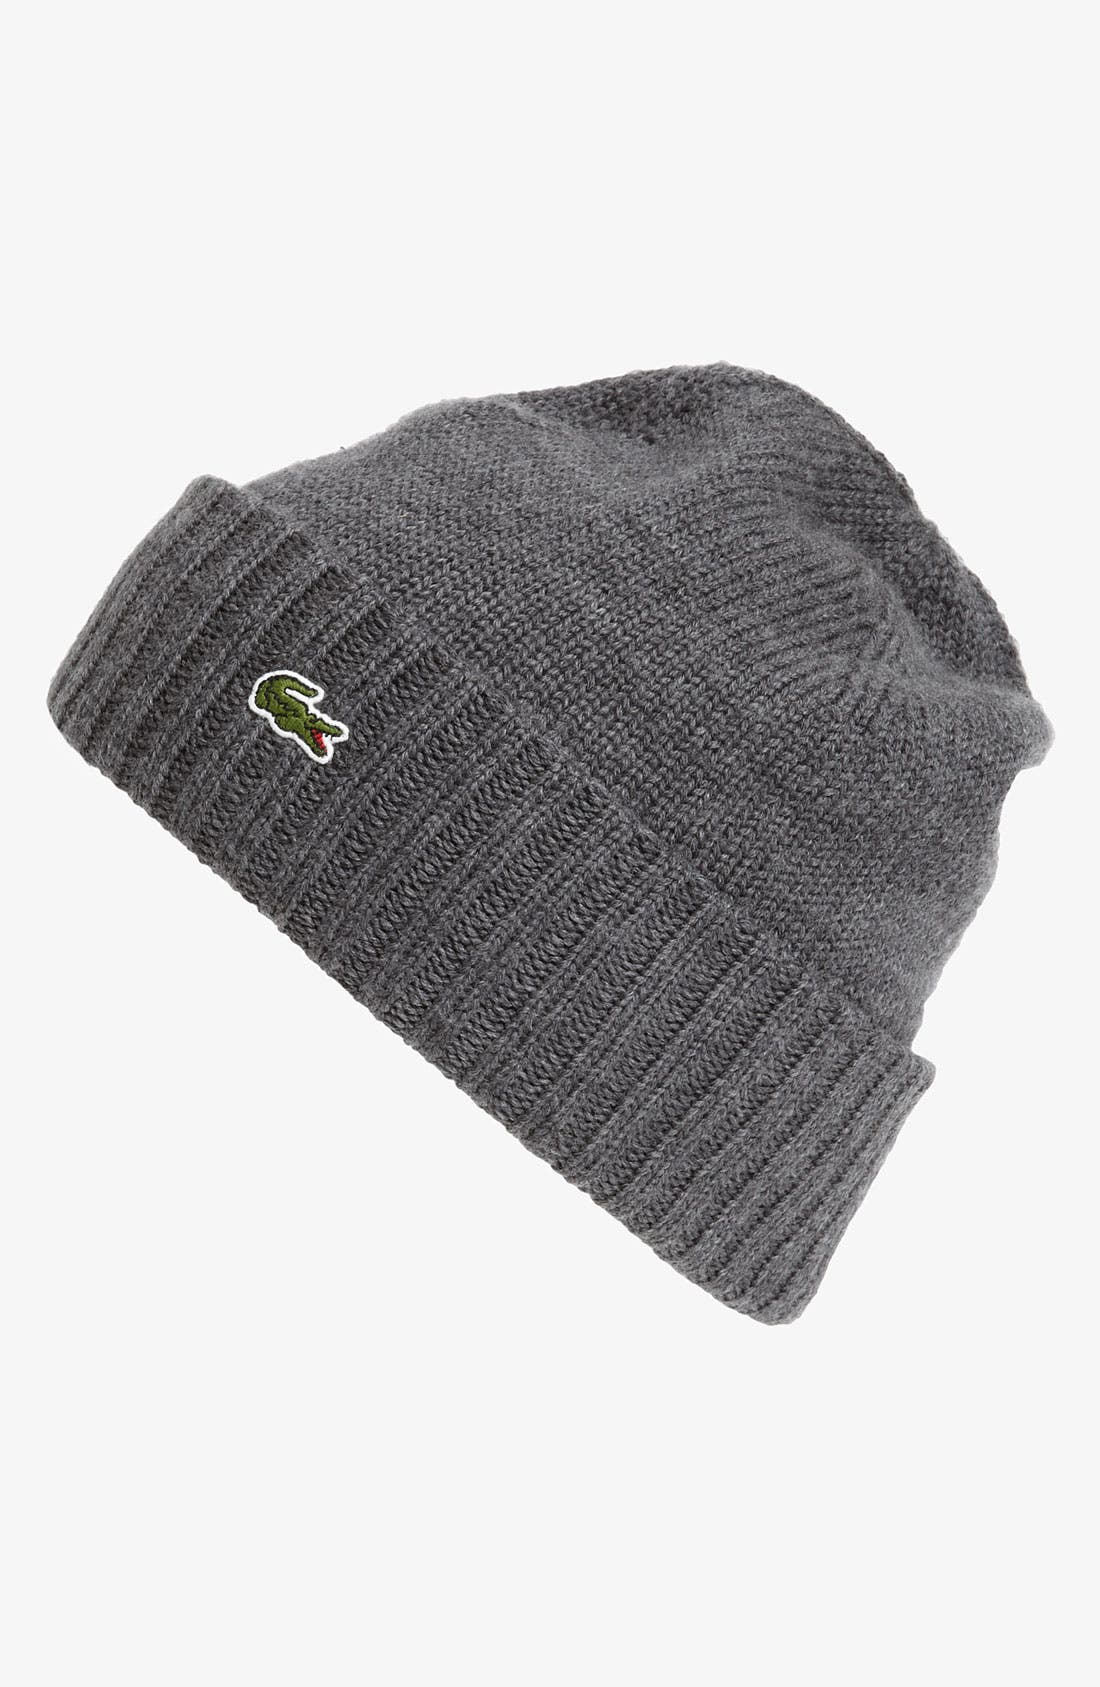 Main Image - Lacoste Wool Knit Cap